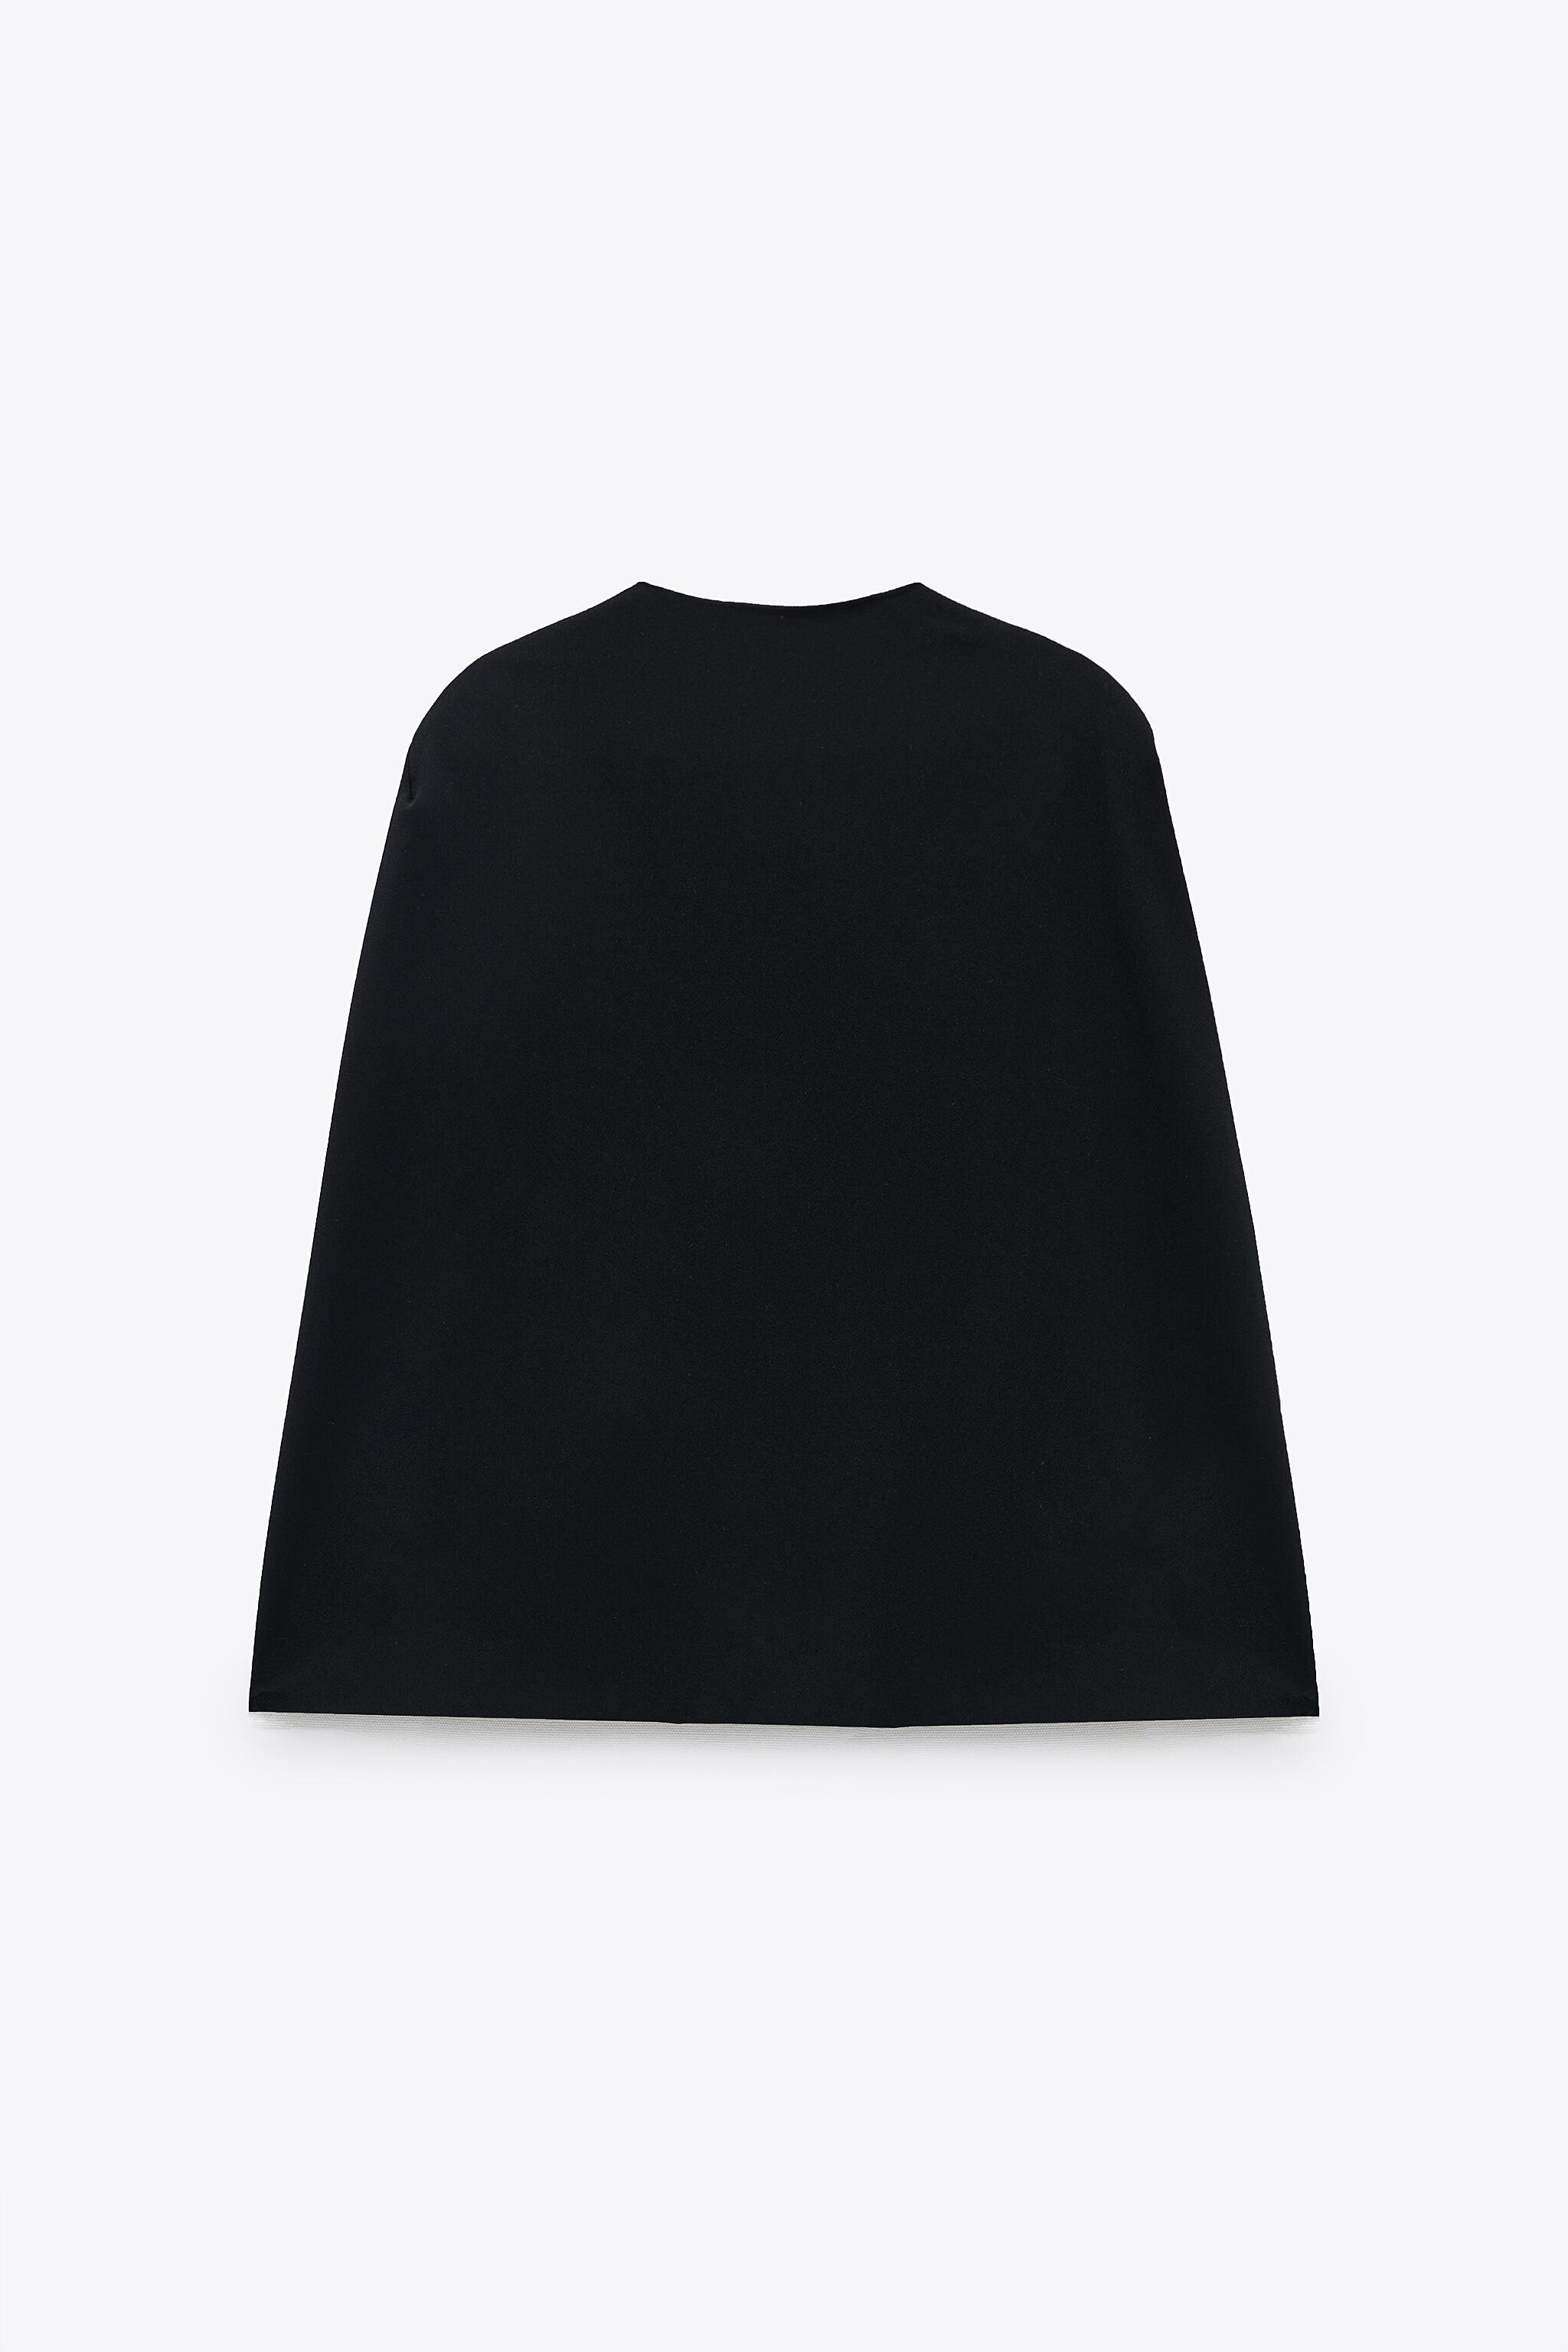 CAPE WITH SLITS 6